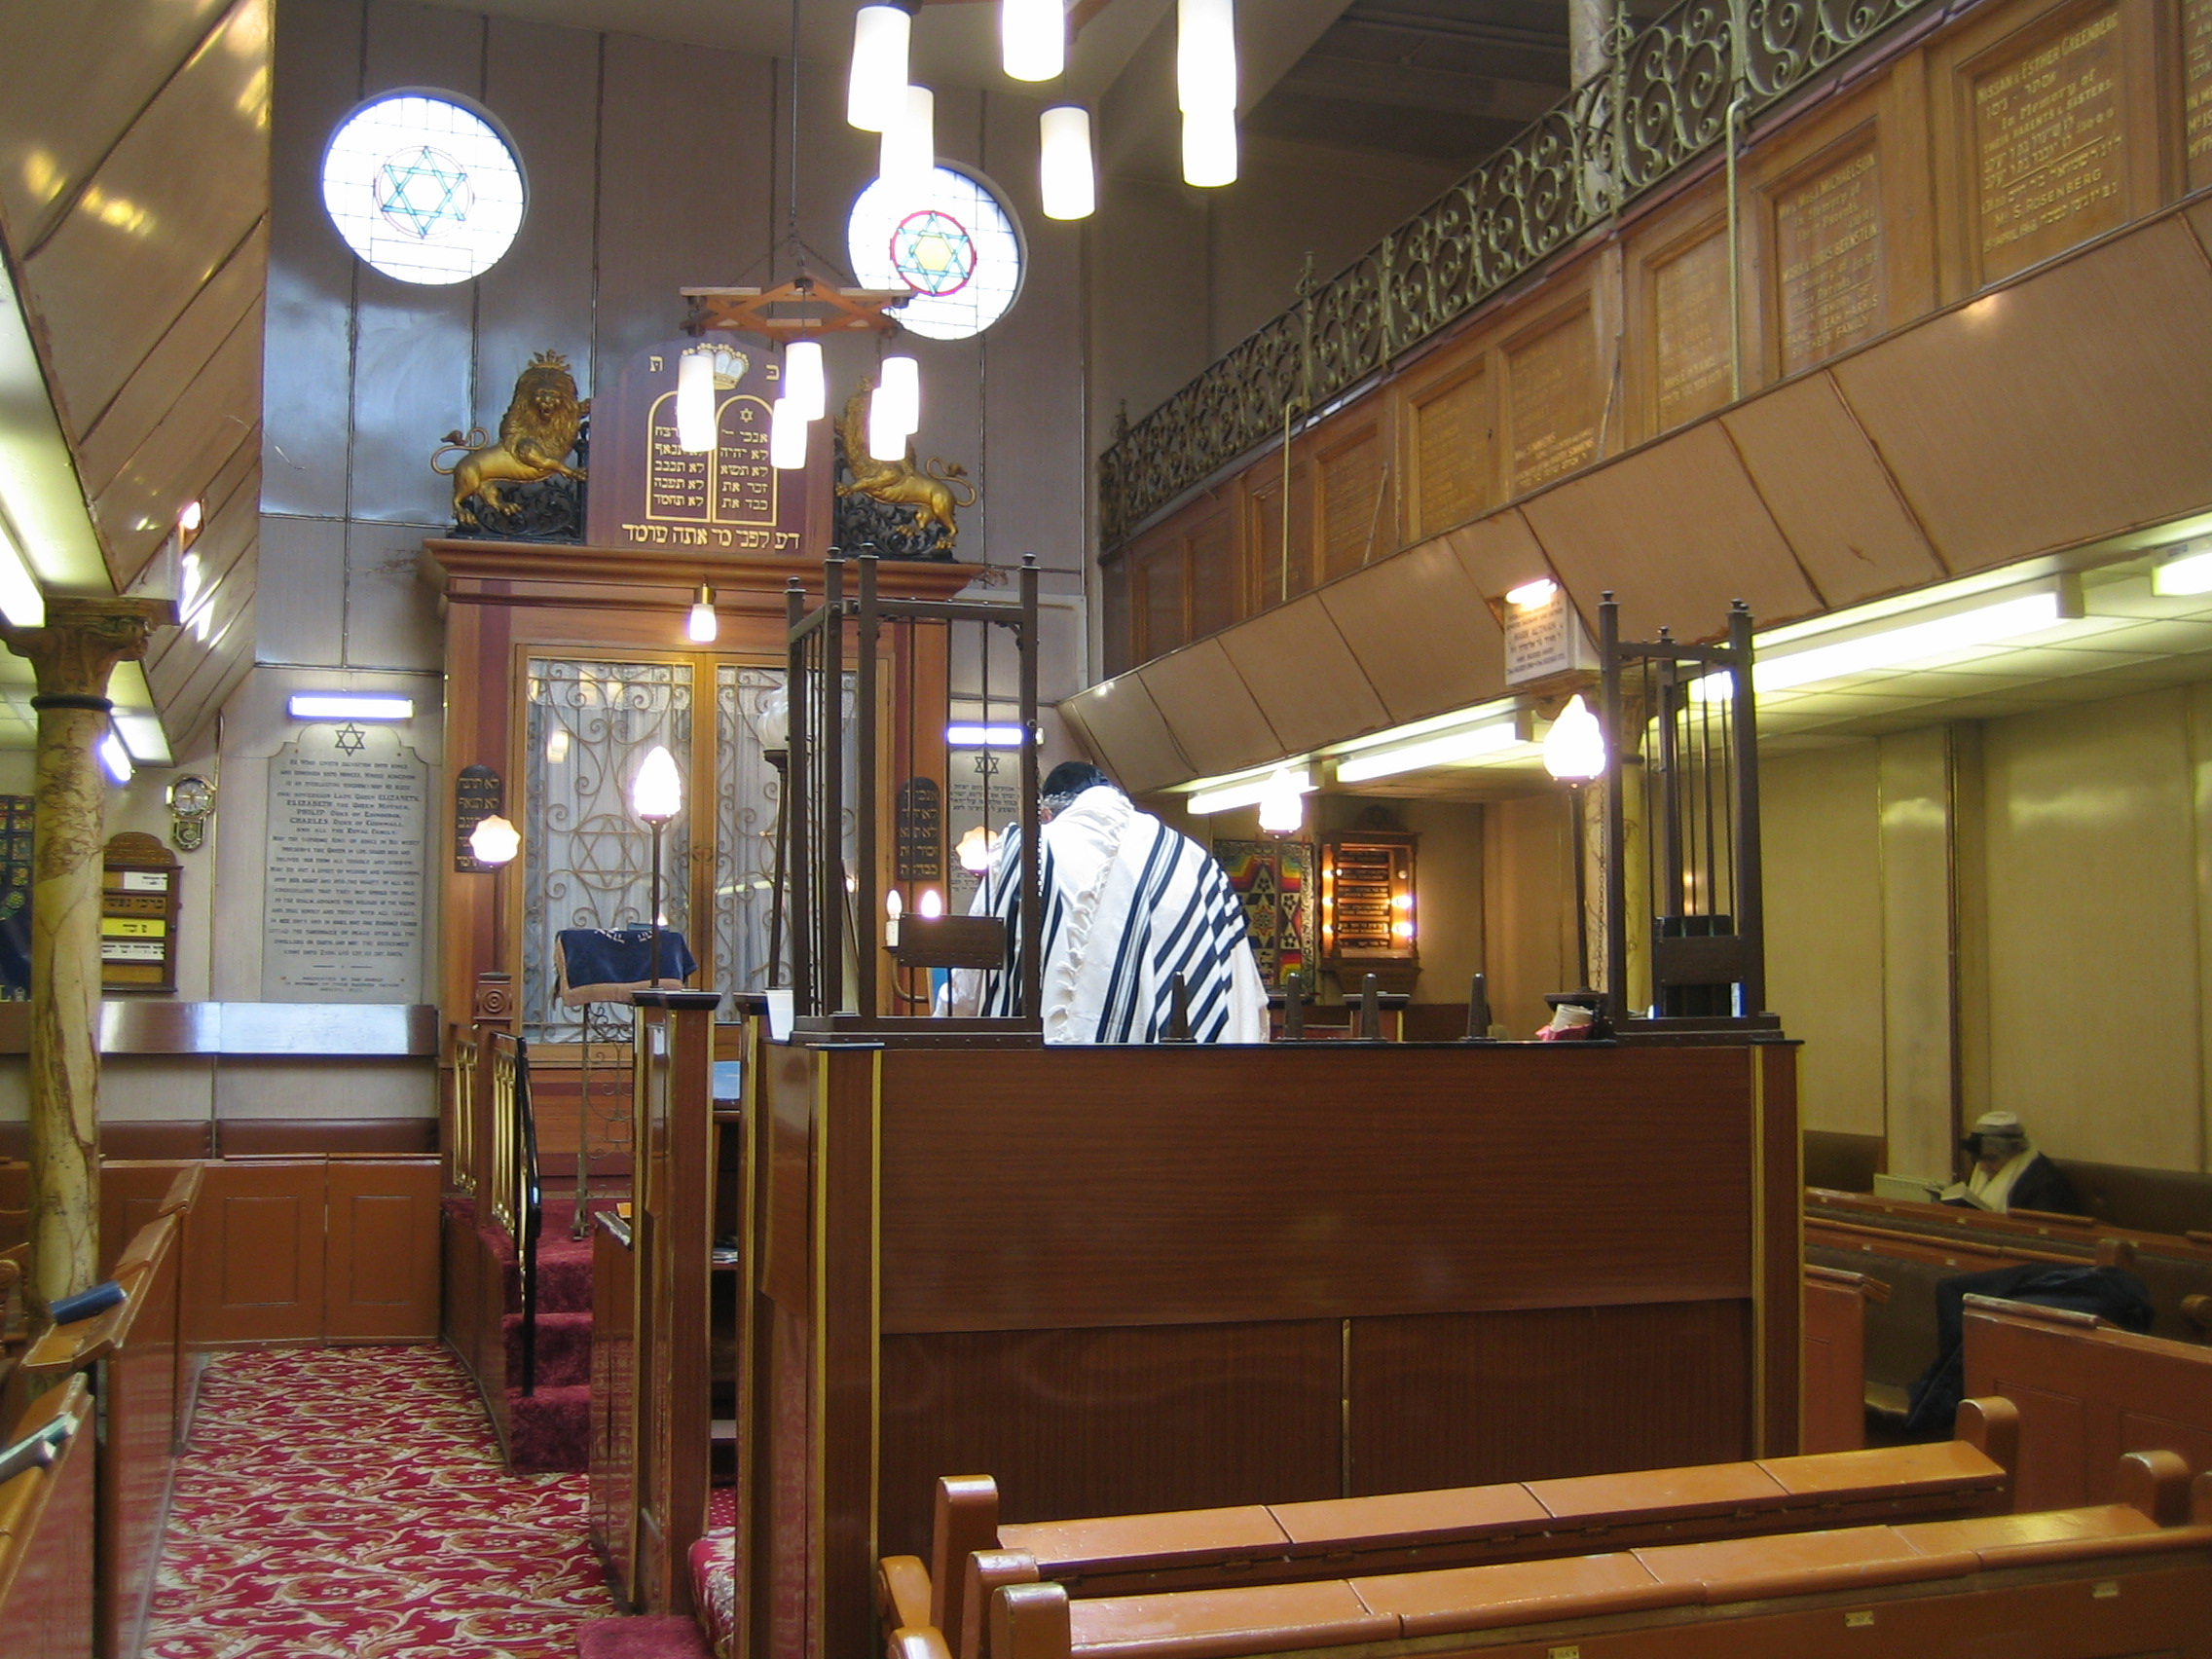 Fieldgate Street synagogue interior looking towards the Ark